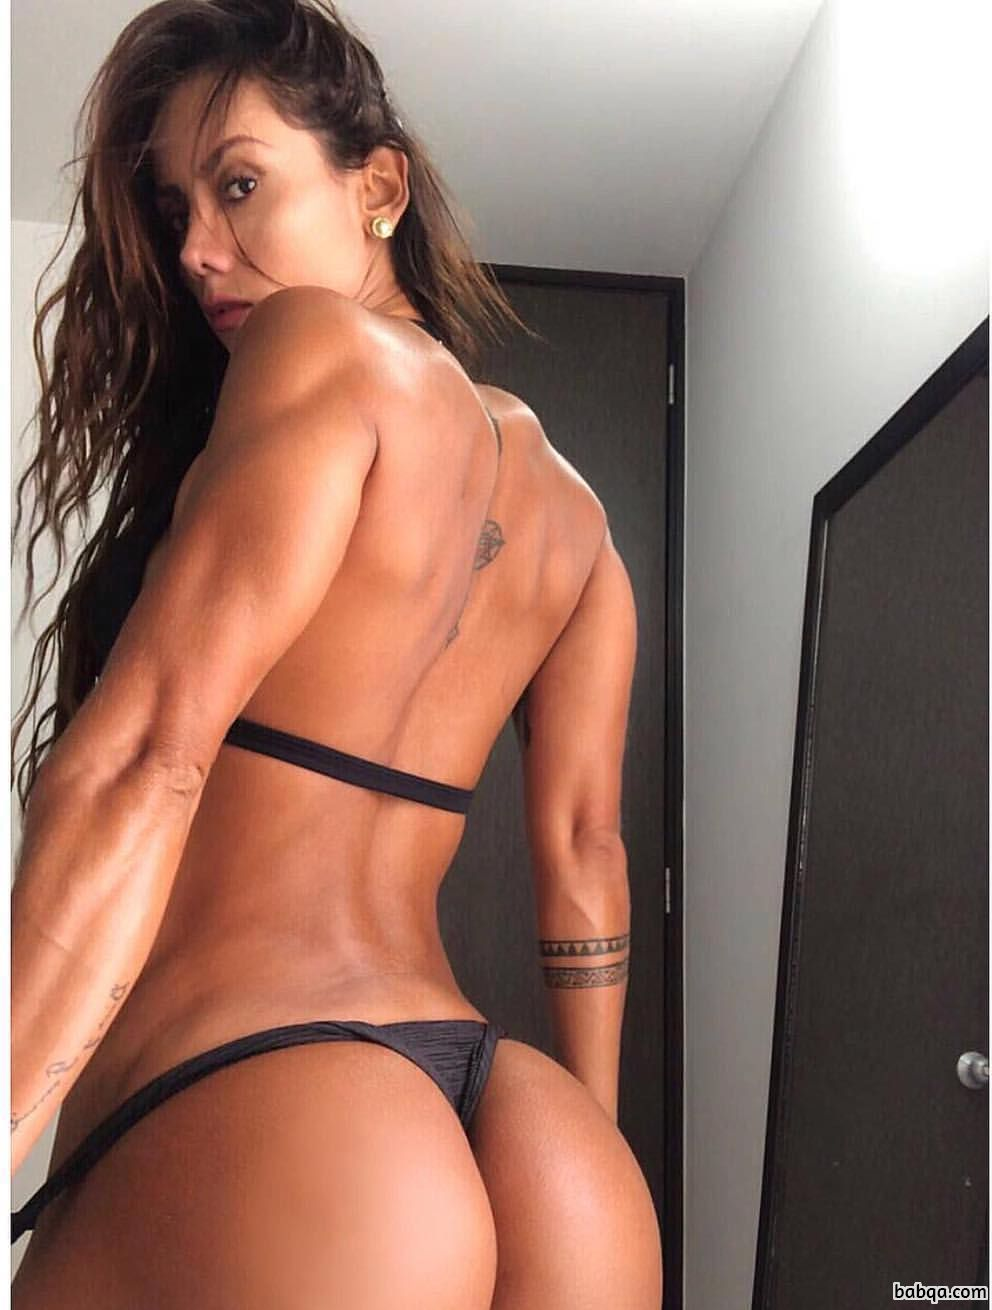 bridal boot camp kansas city repost from femalesphysiques – hot girls wanted full picture